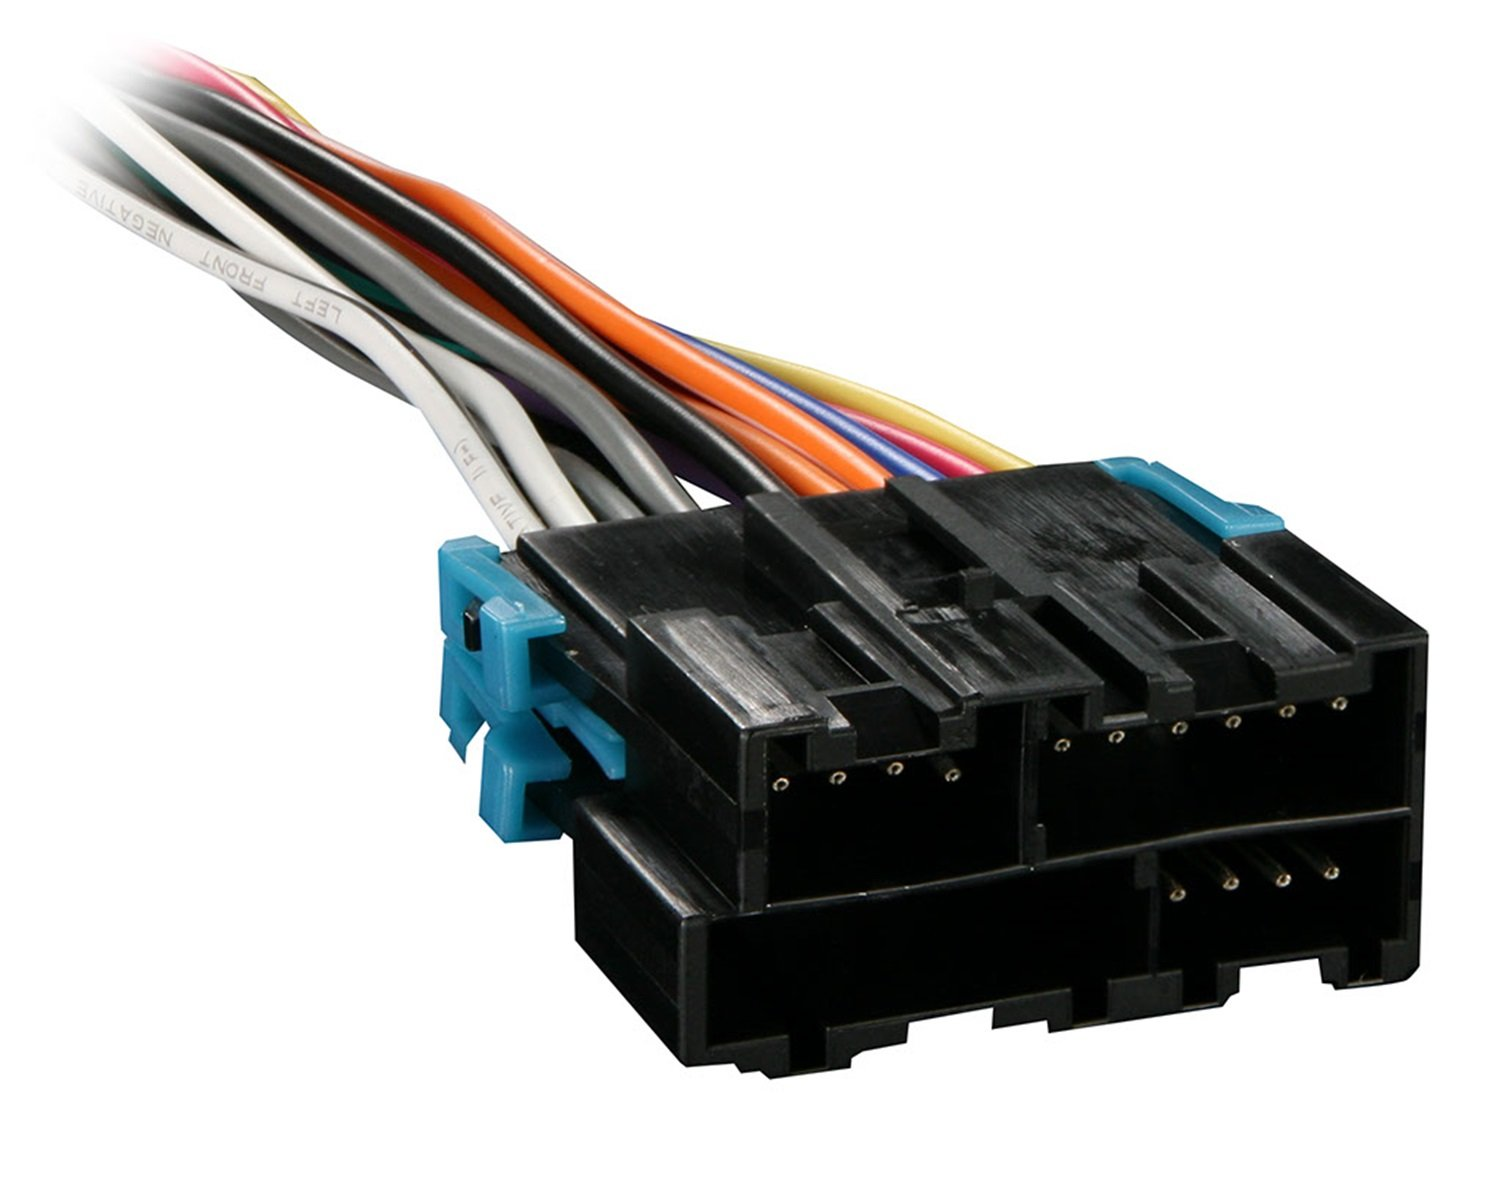 61 CwjZt1hL._SL1500_ radio wiring harnesses amazon com wiring harness for car stereo installation at fashall.co